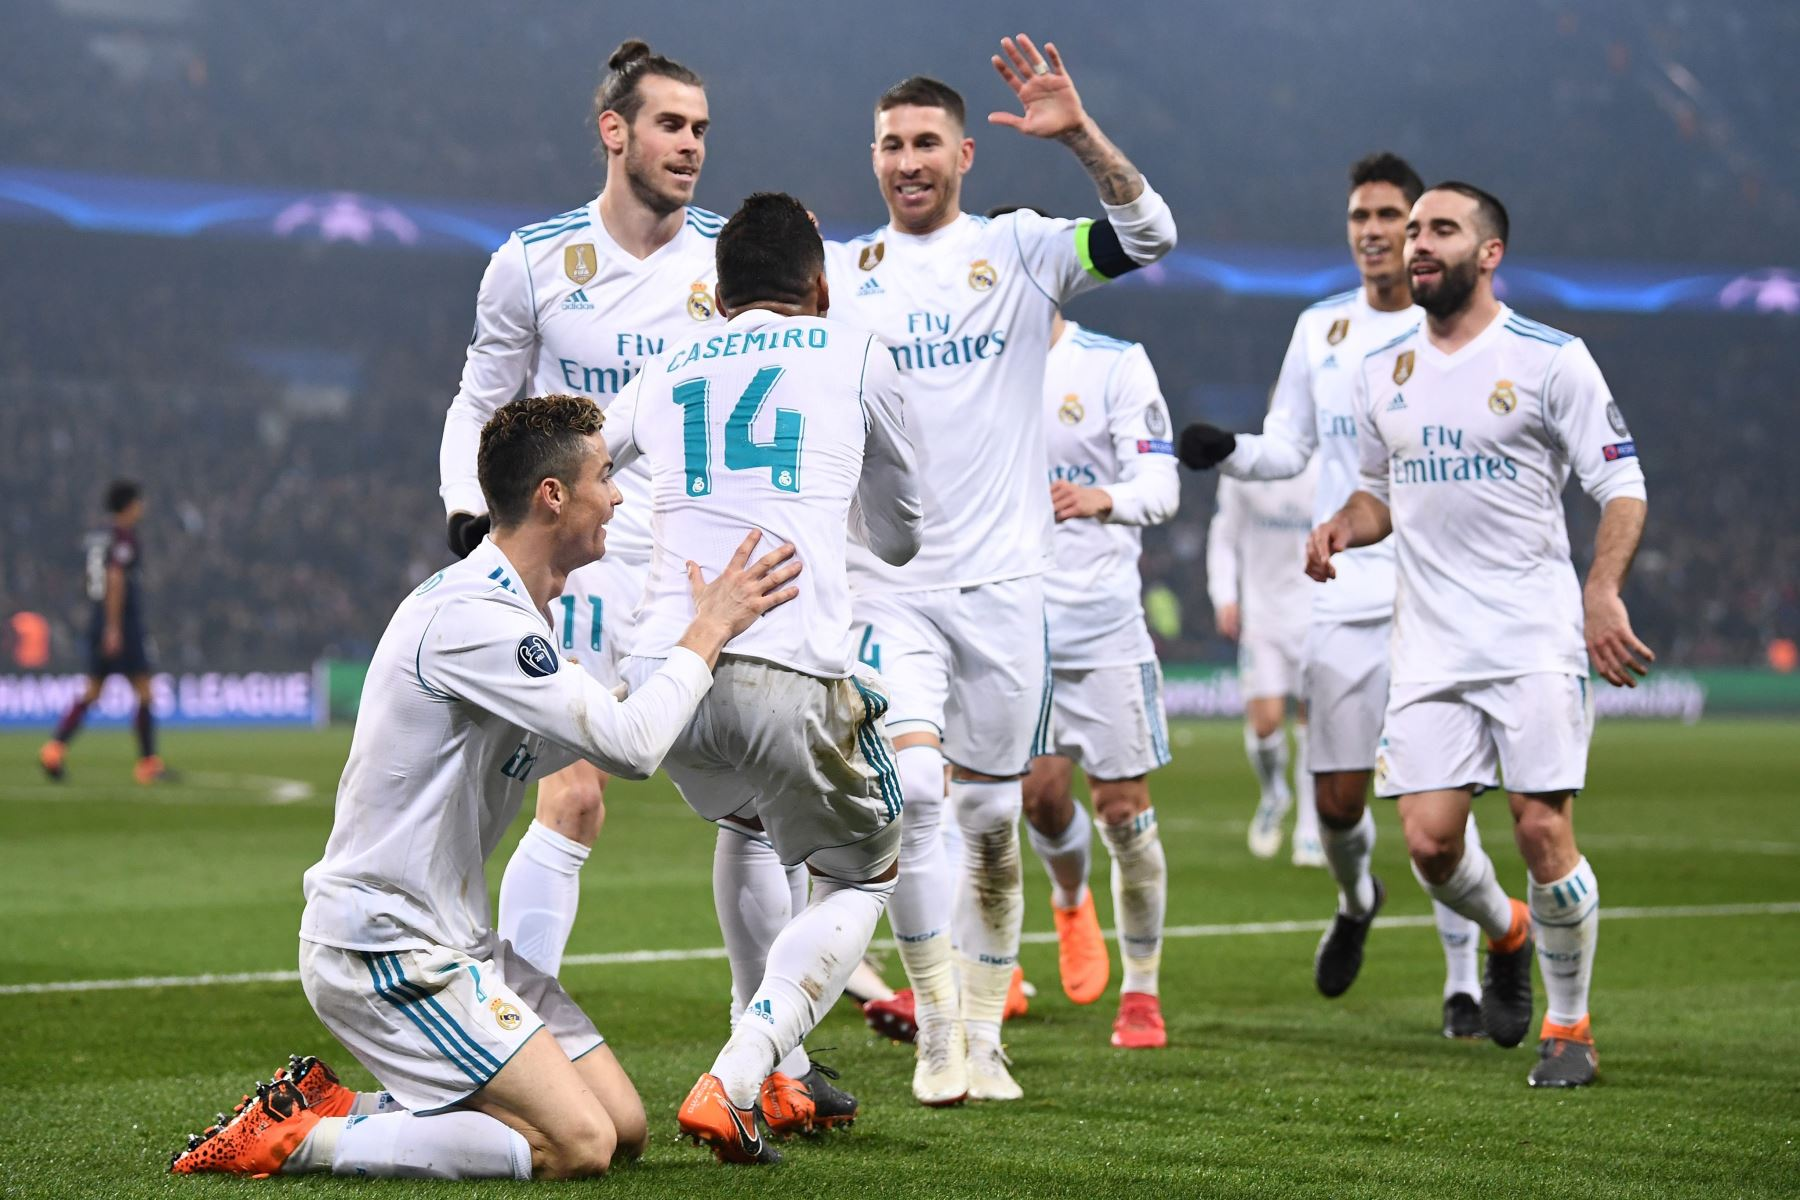 Real Madrid celebra el triunfo de  2 a 1 al  Paris Saint-Germain , en la ronda de octavos de final de la UEFA Champions League.Foto:AFP